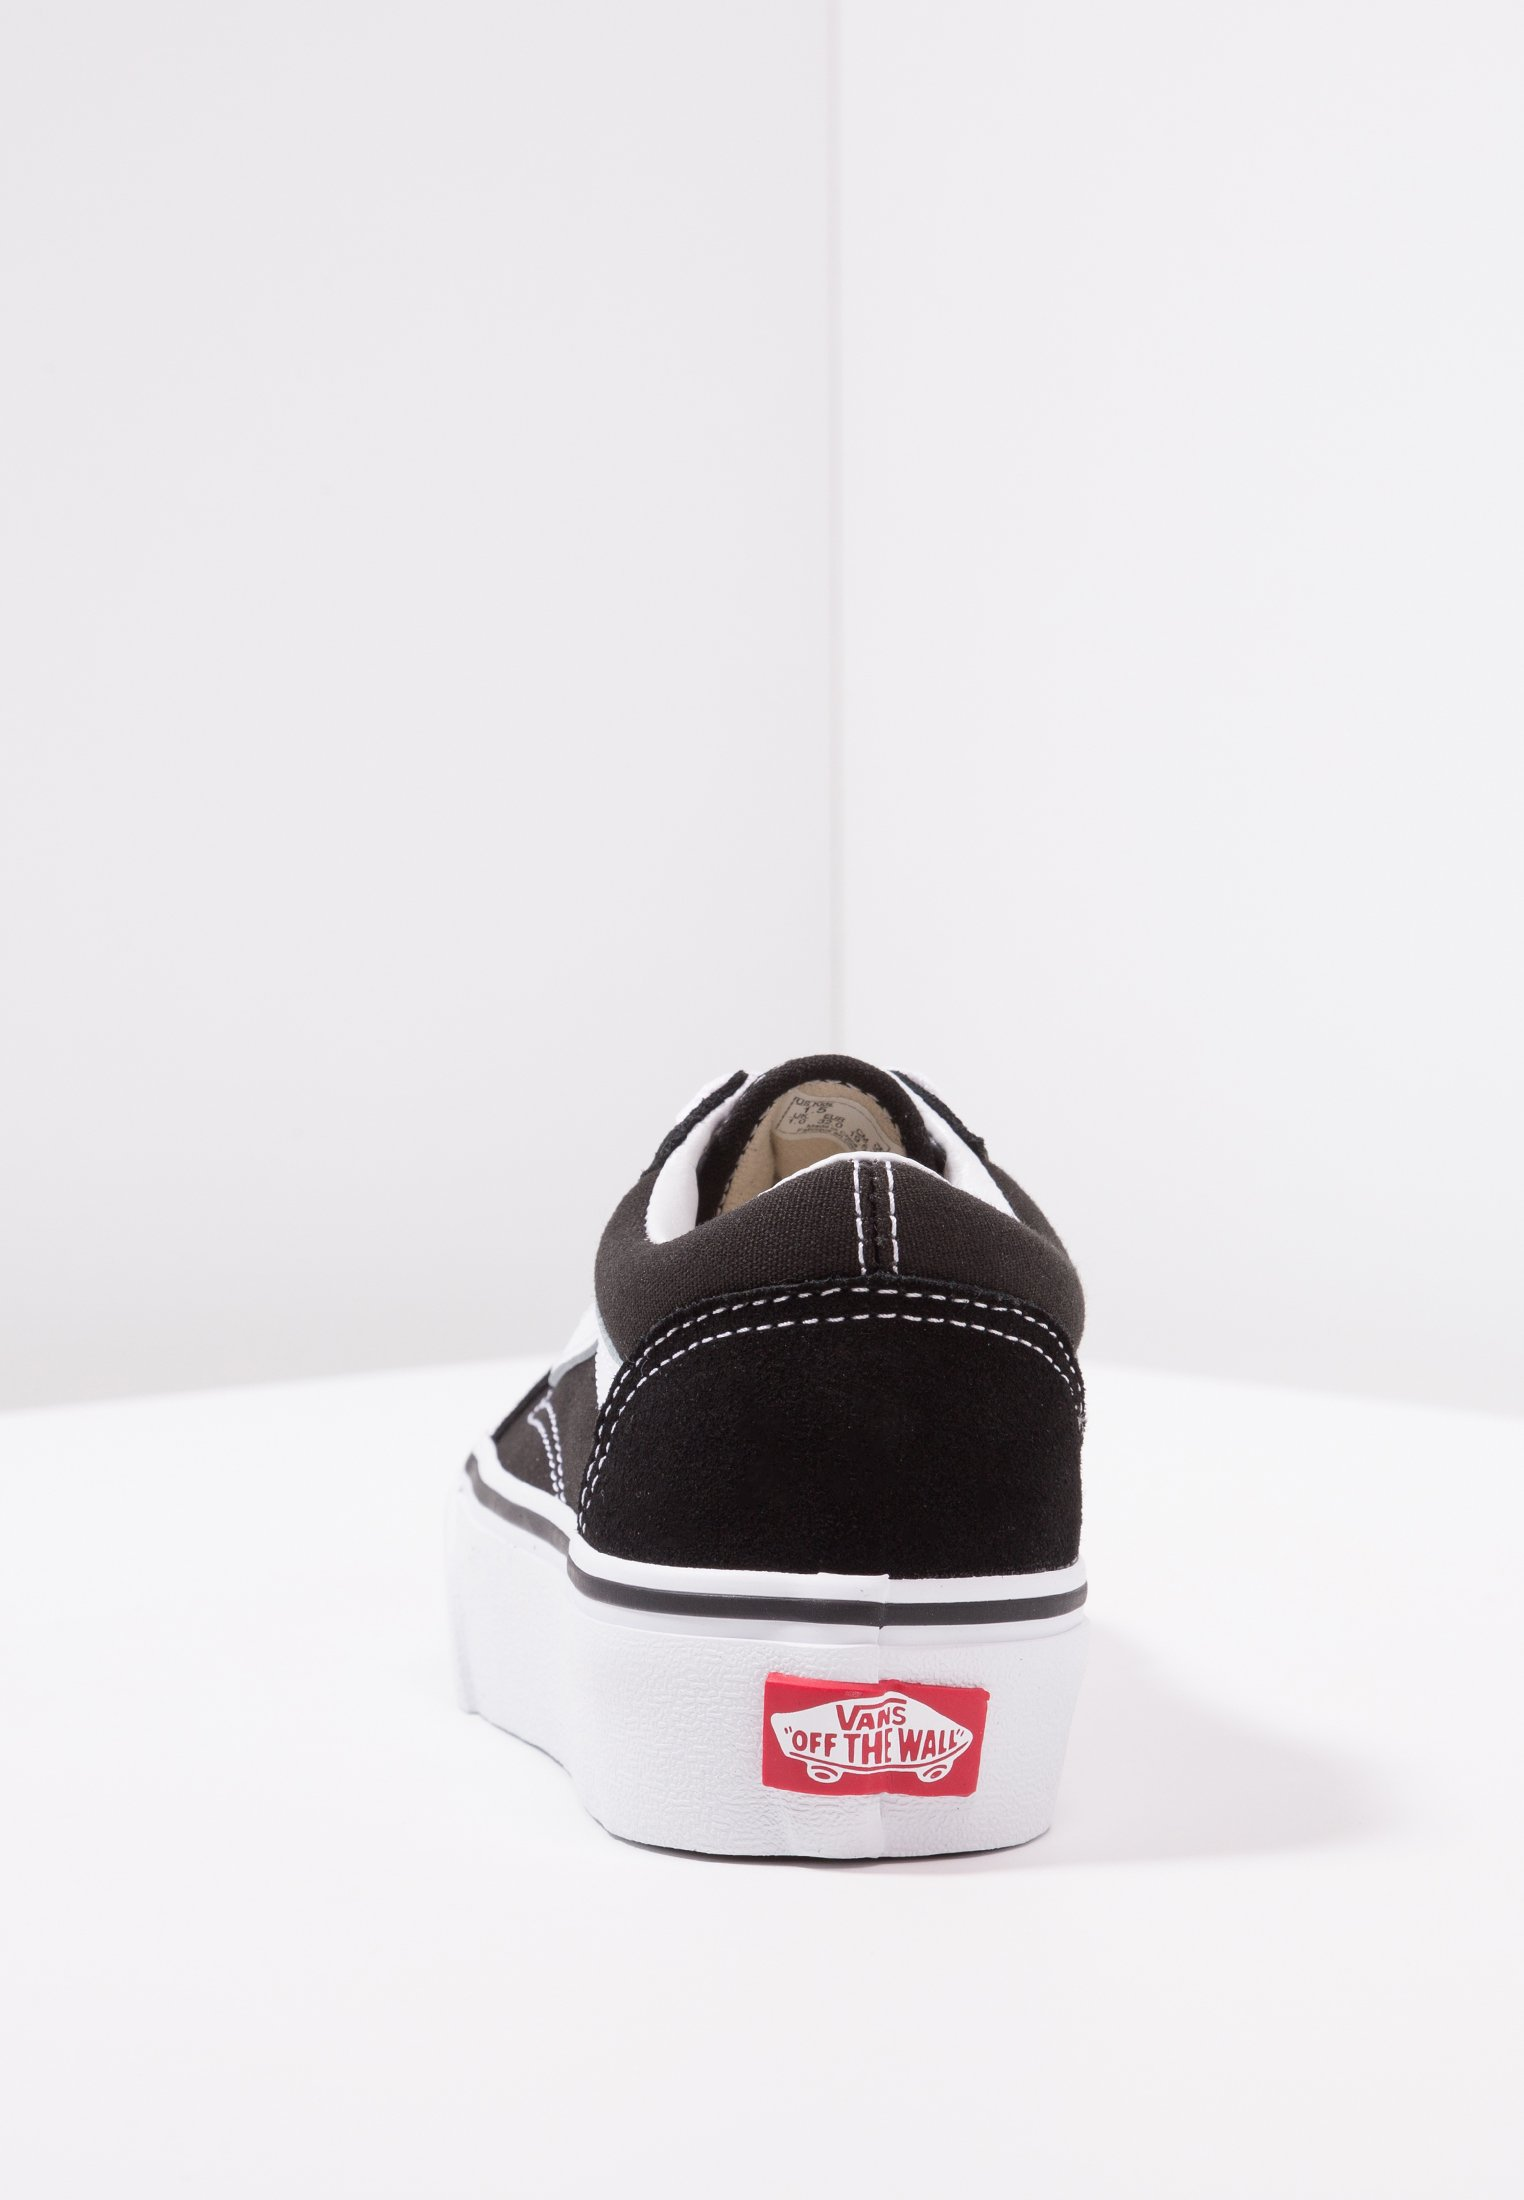 100% garanti Meilleurs prix Vans OLD SKOOL PLATFORM Baskets basses black/true white baiXB